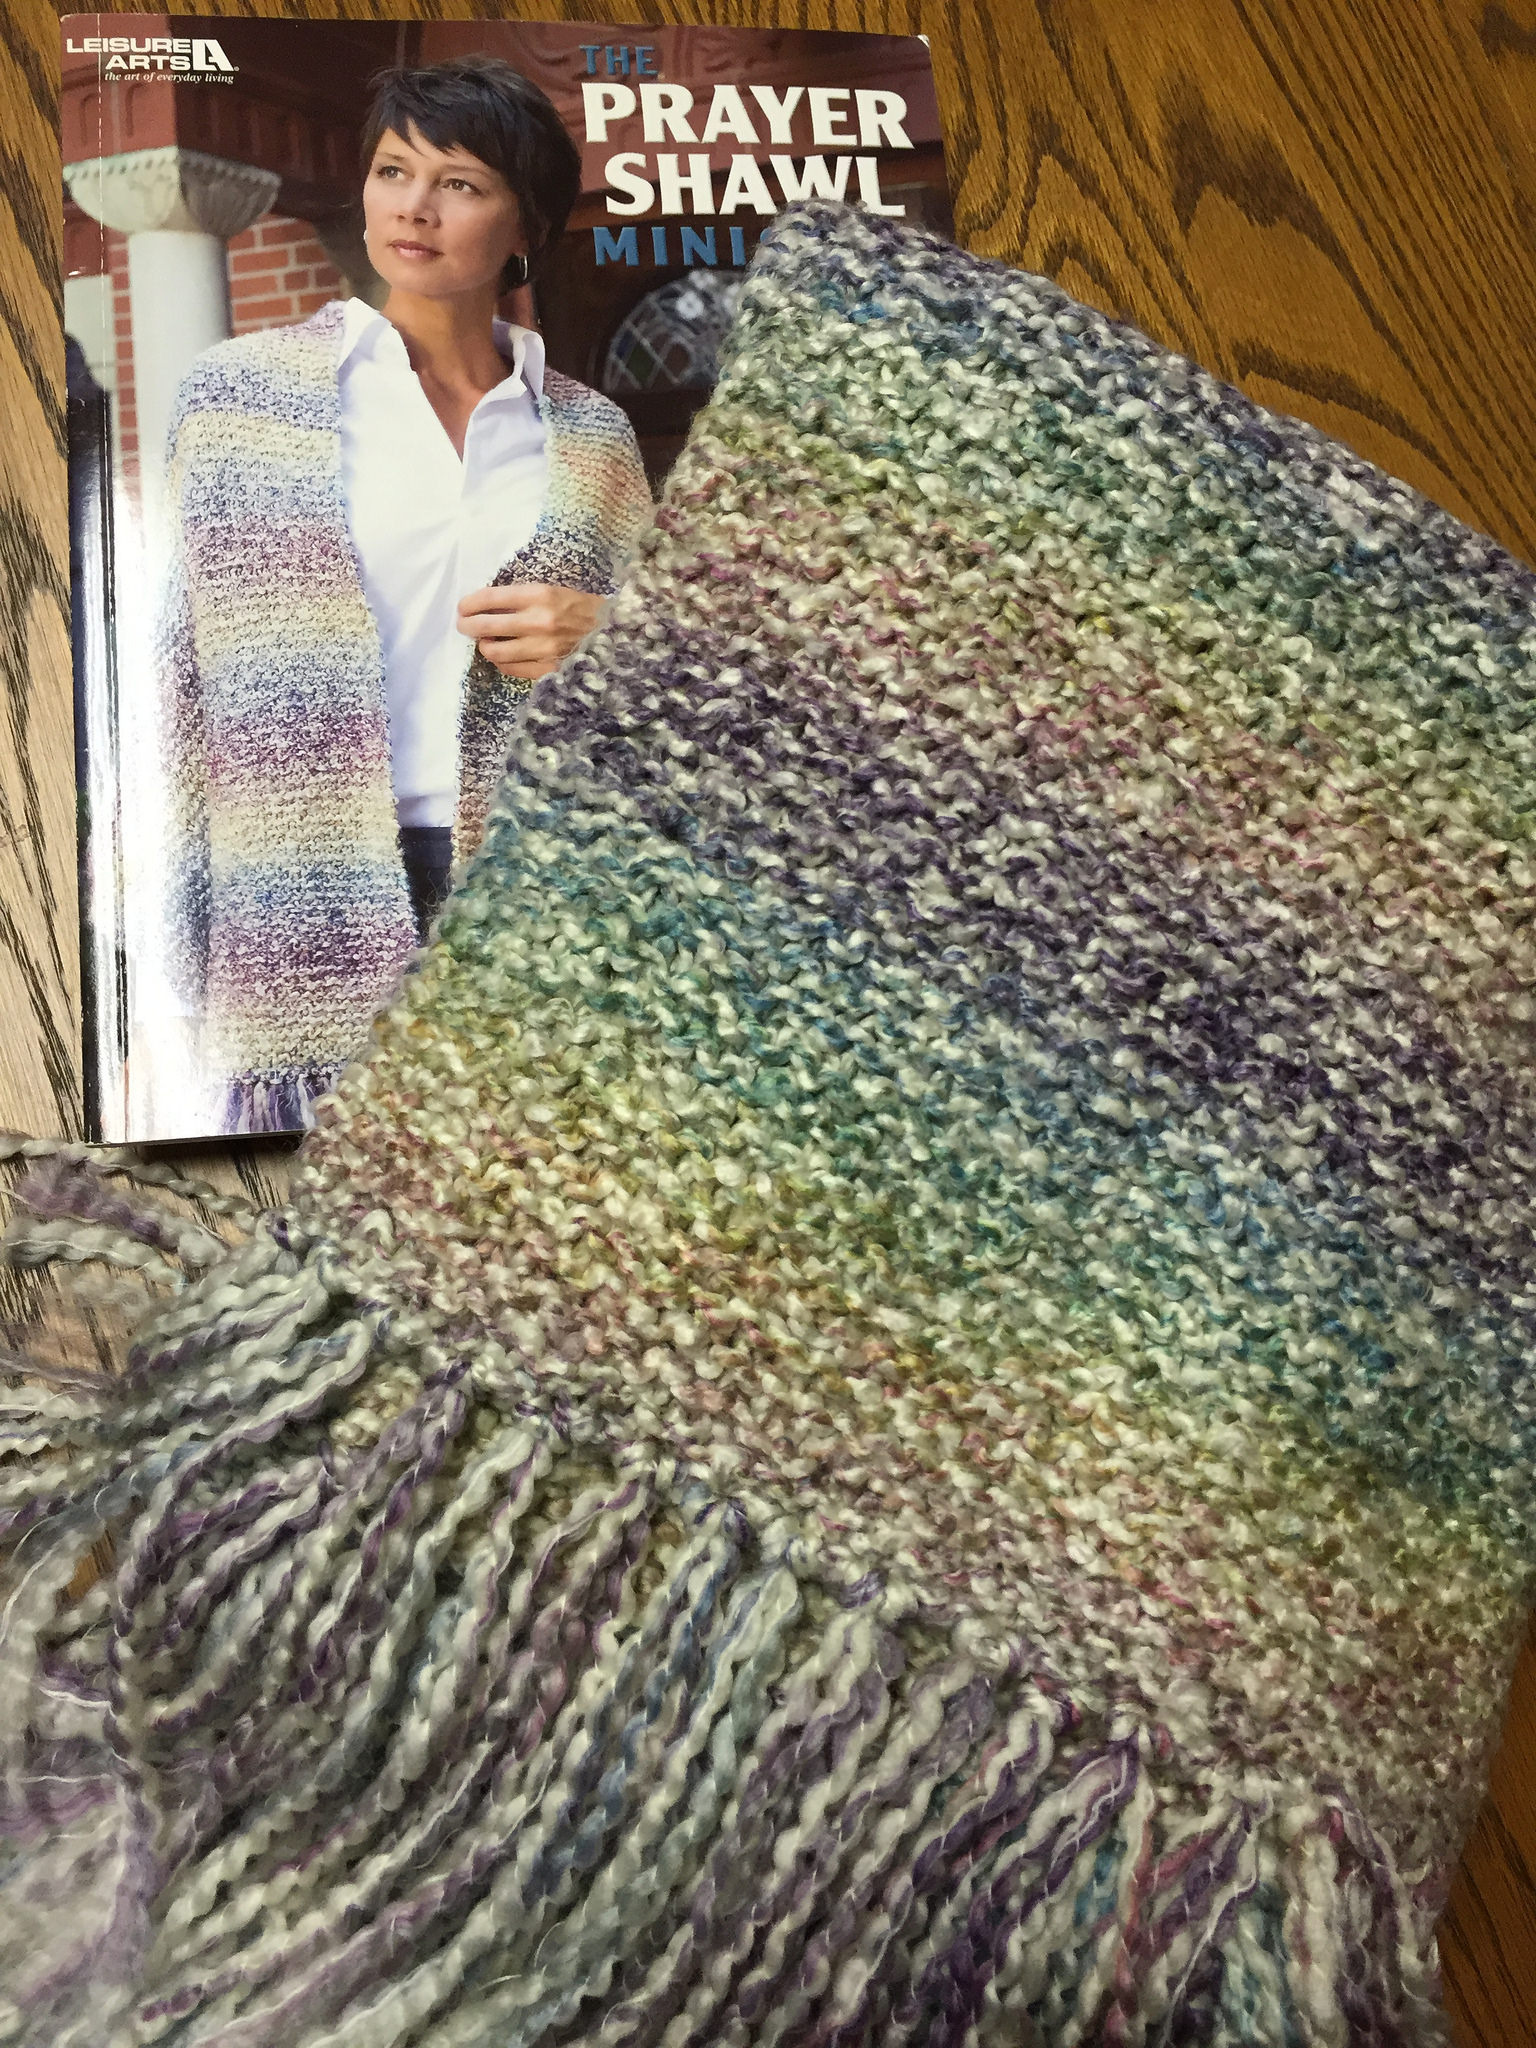 Prayer shawls episcopal church of the resurrection prayer shawl ministry bankloansurffo Image collections